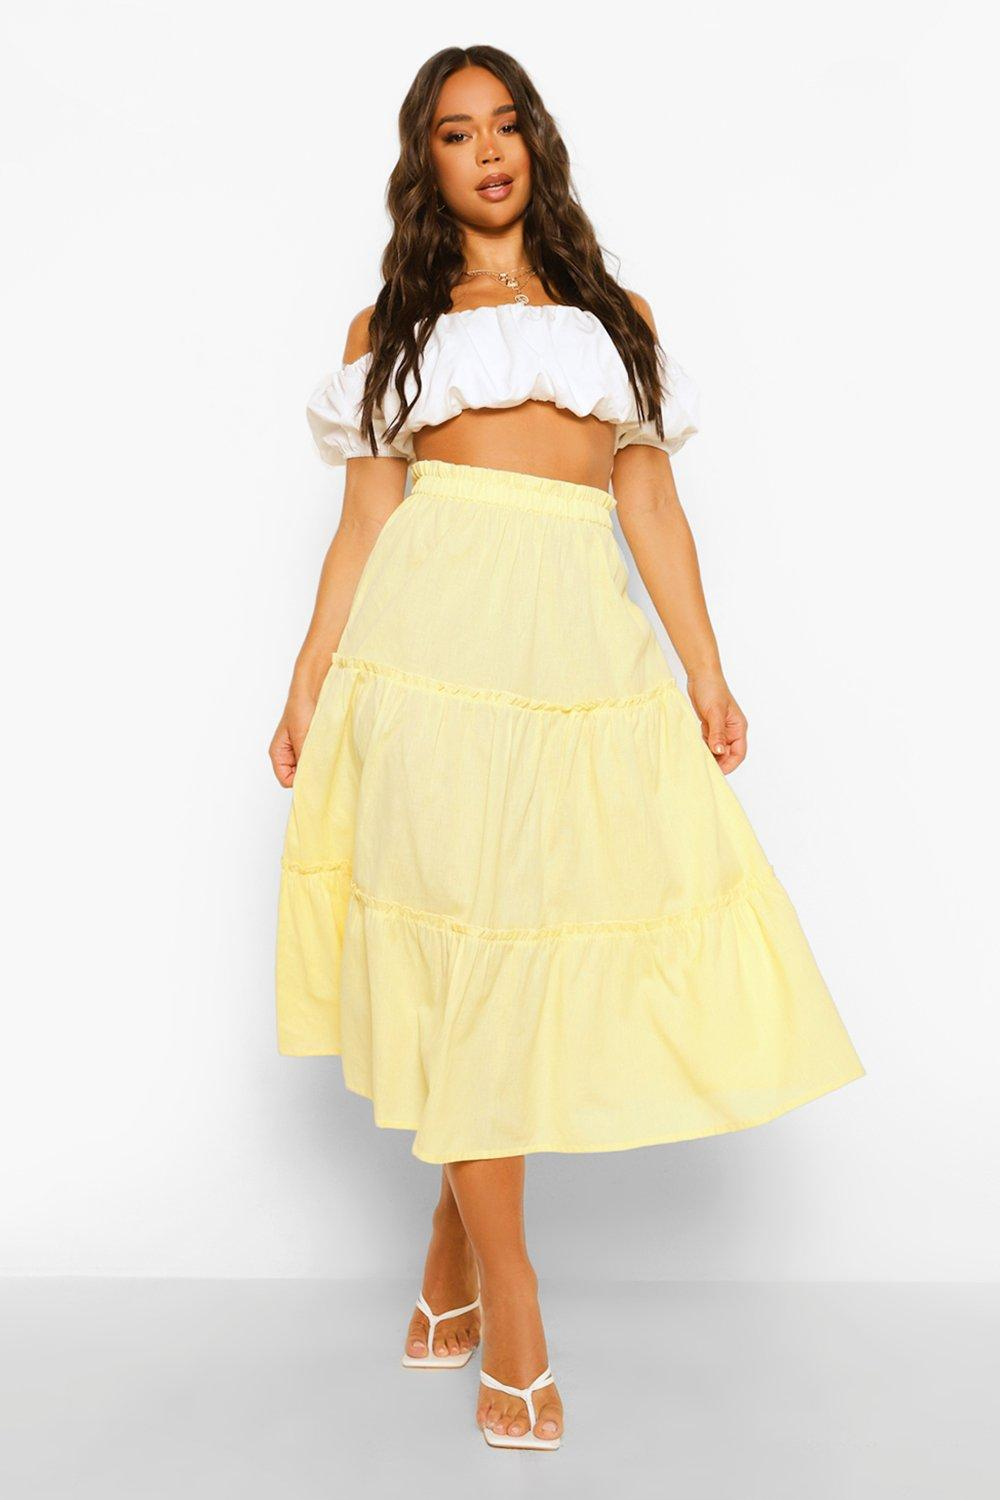 Vintage Skirts | Retro, Pencil, Swing, Boho Womens Cotton Tiered Full Midi Skirt - Yellow - 12 $14.40 AT vintagedancer.com